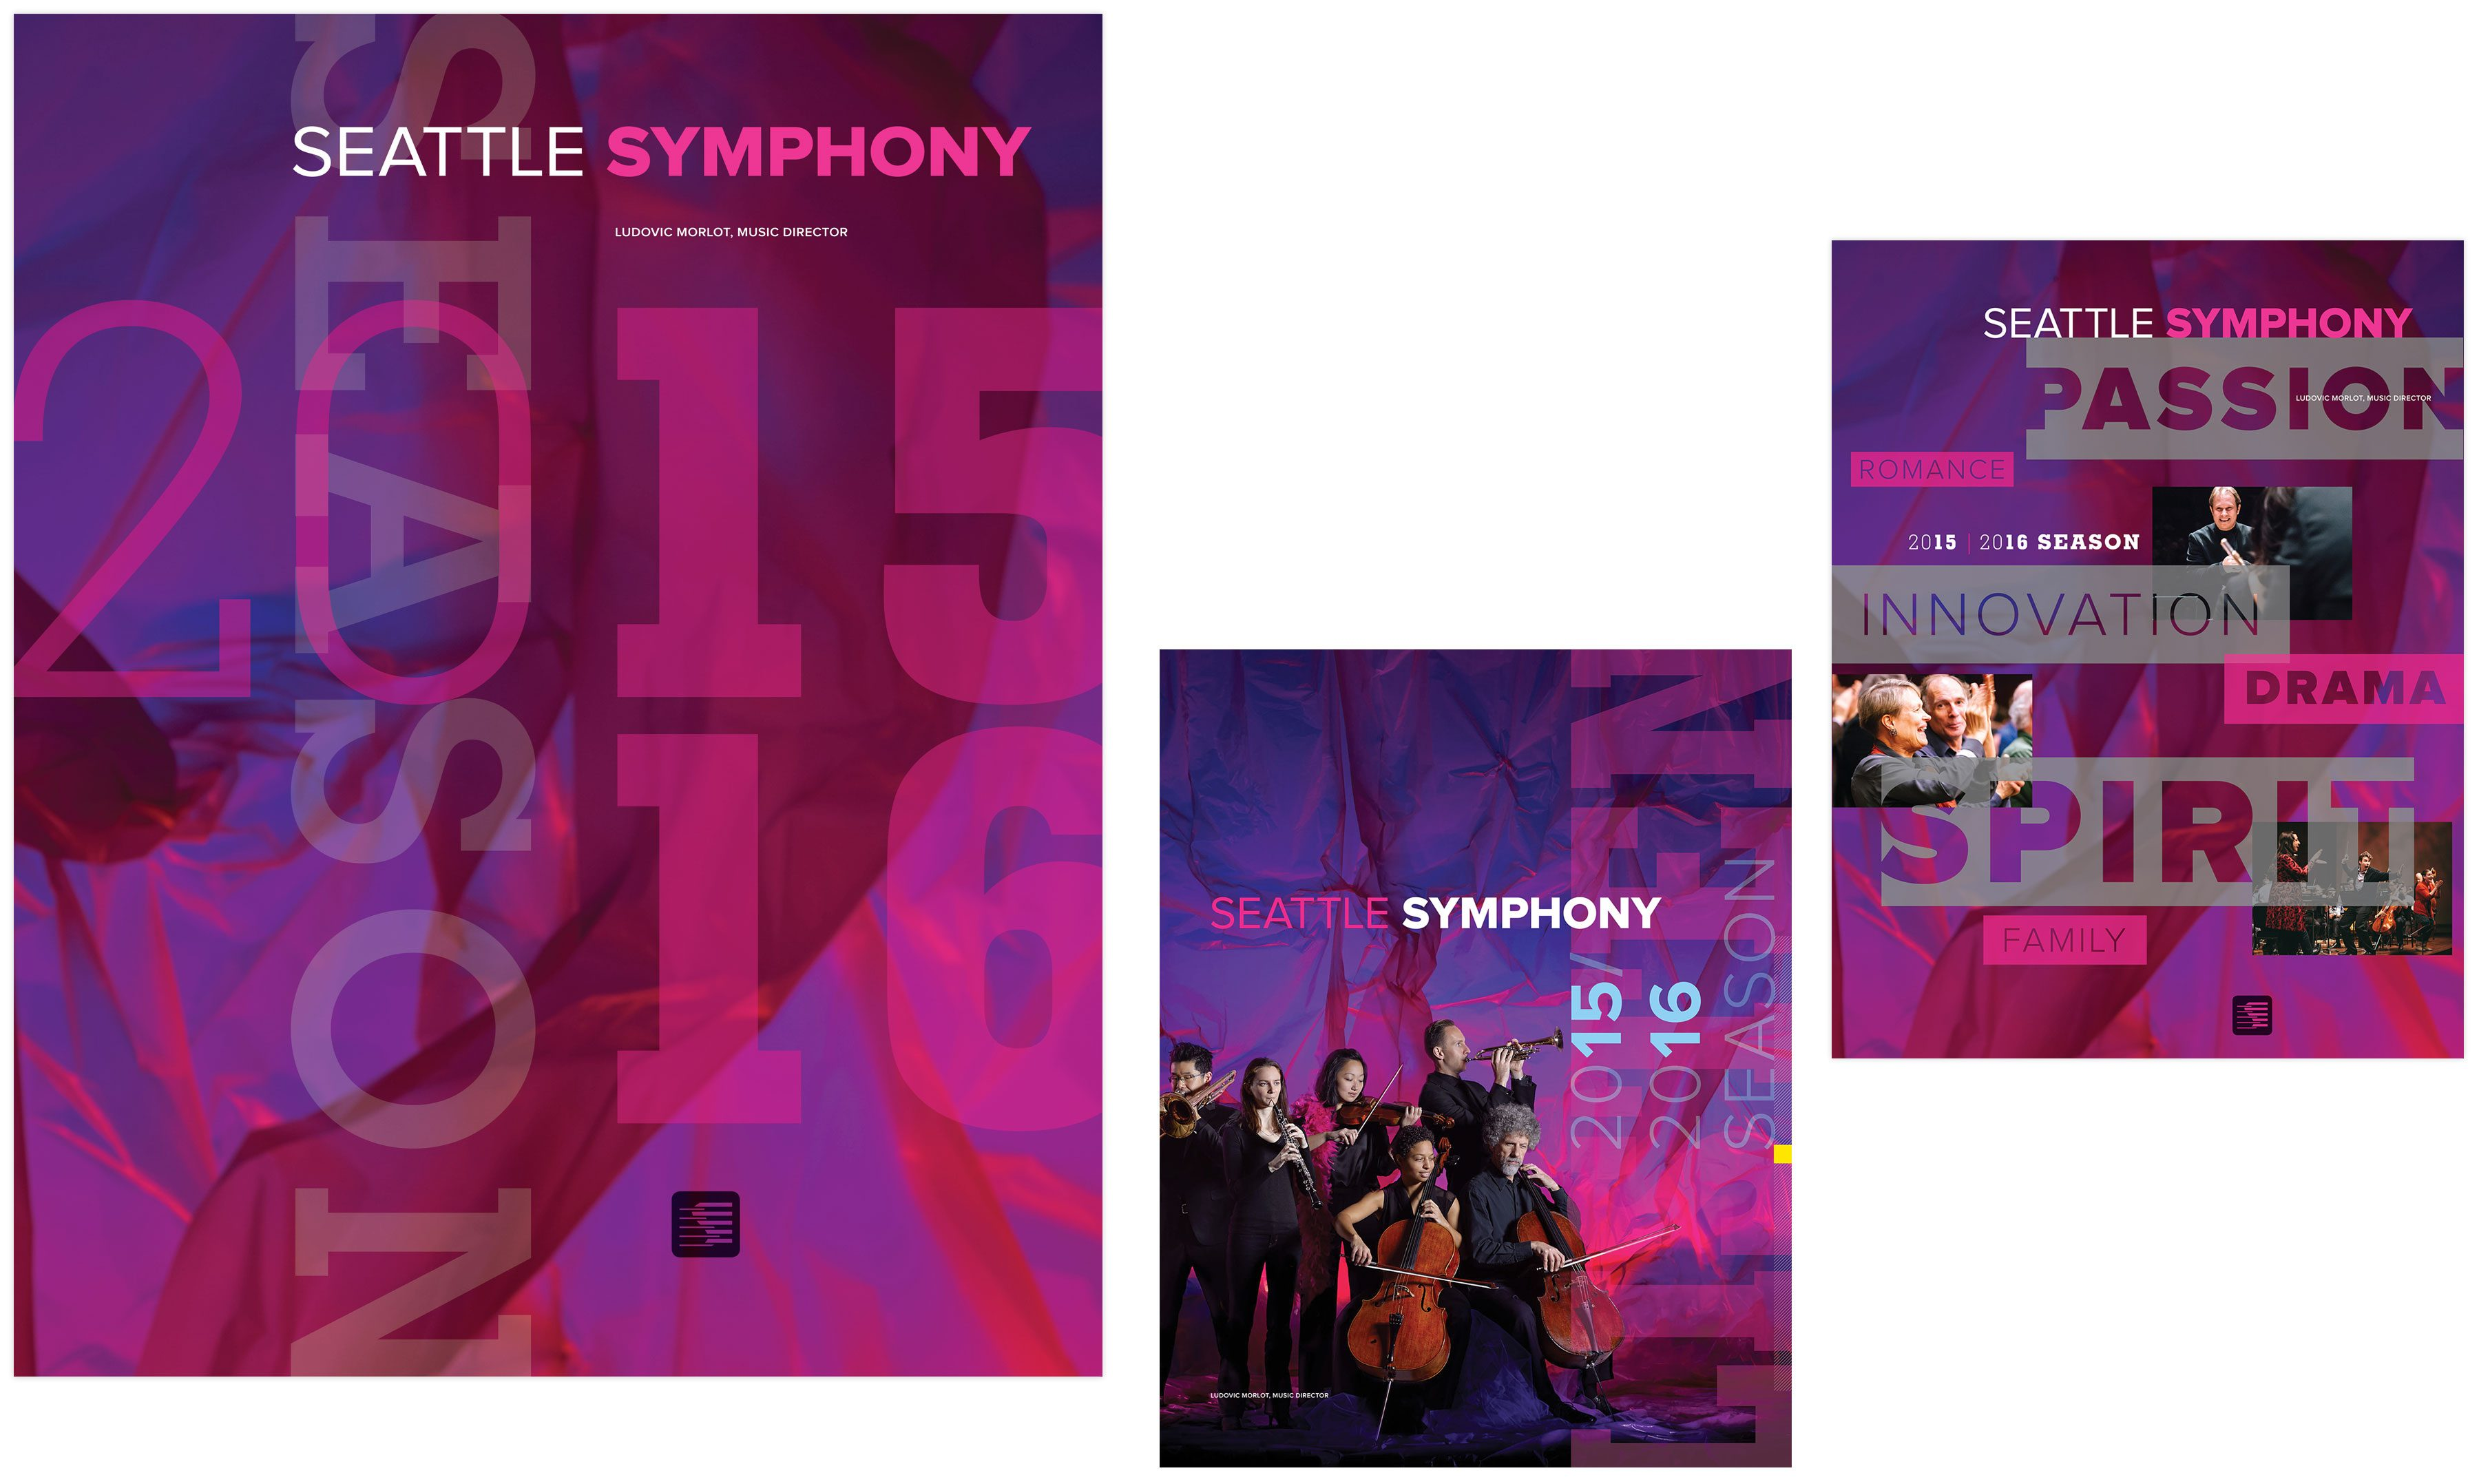 Seattle Symphony Orchestra brochure covers